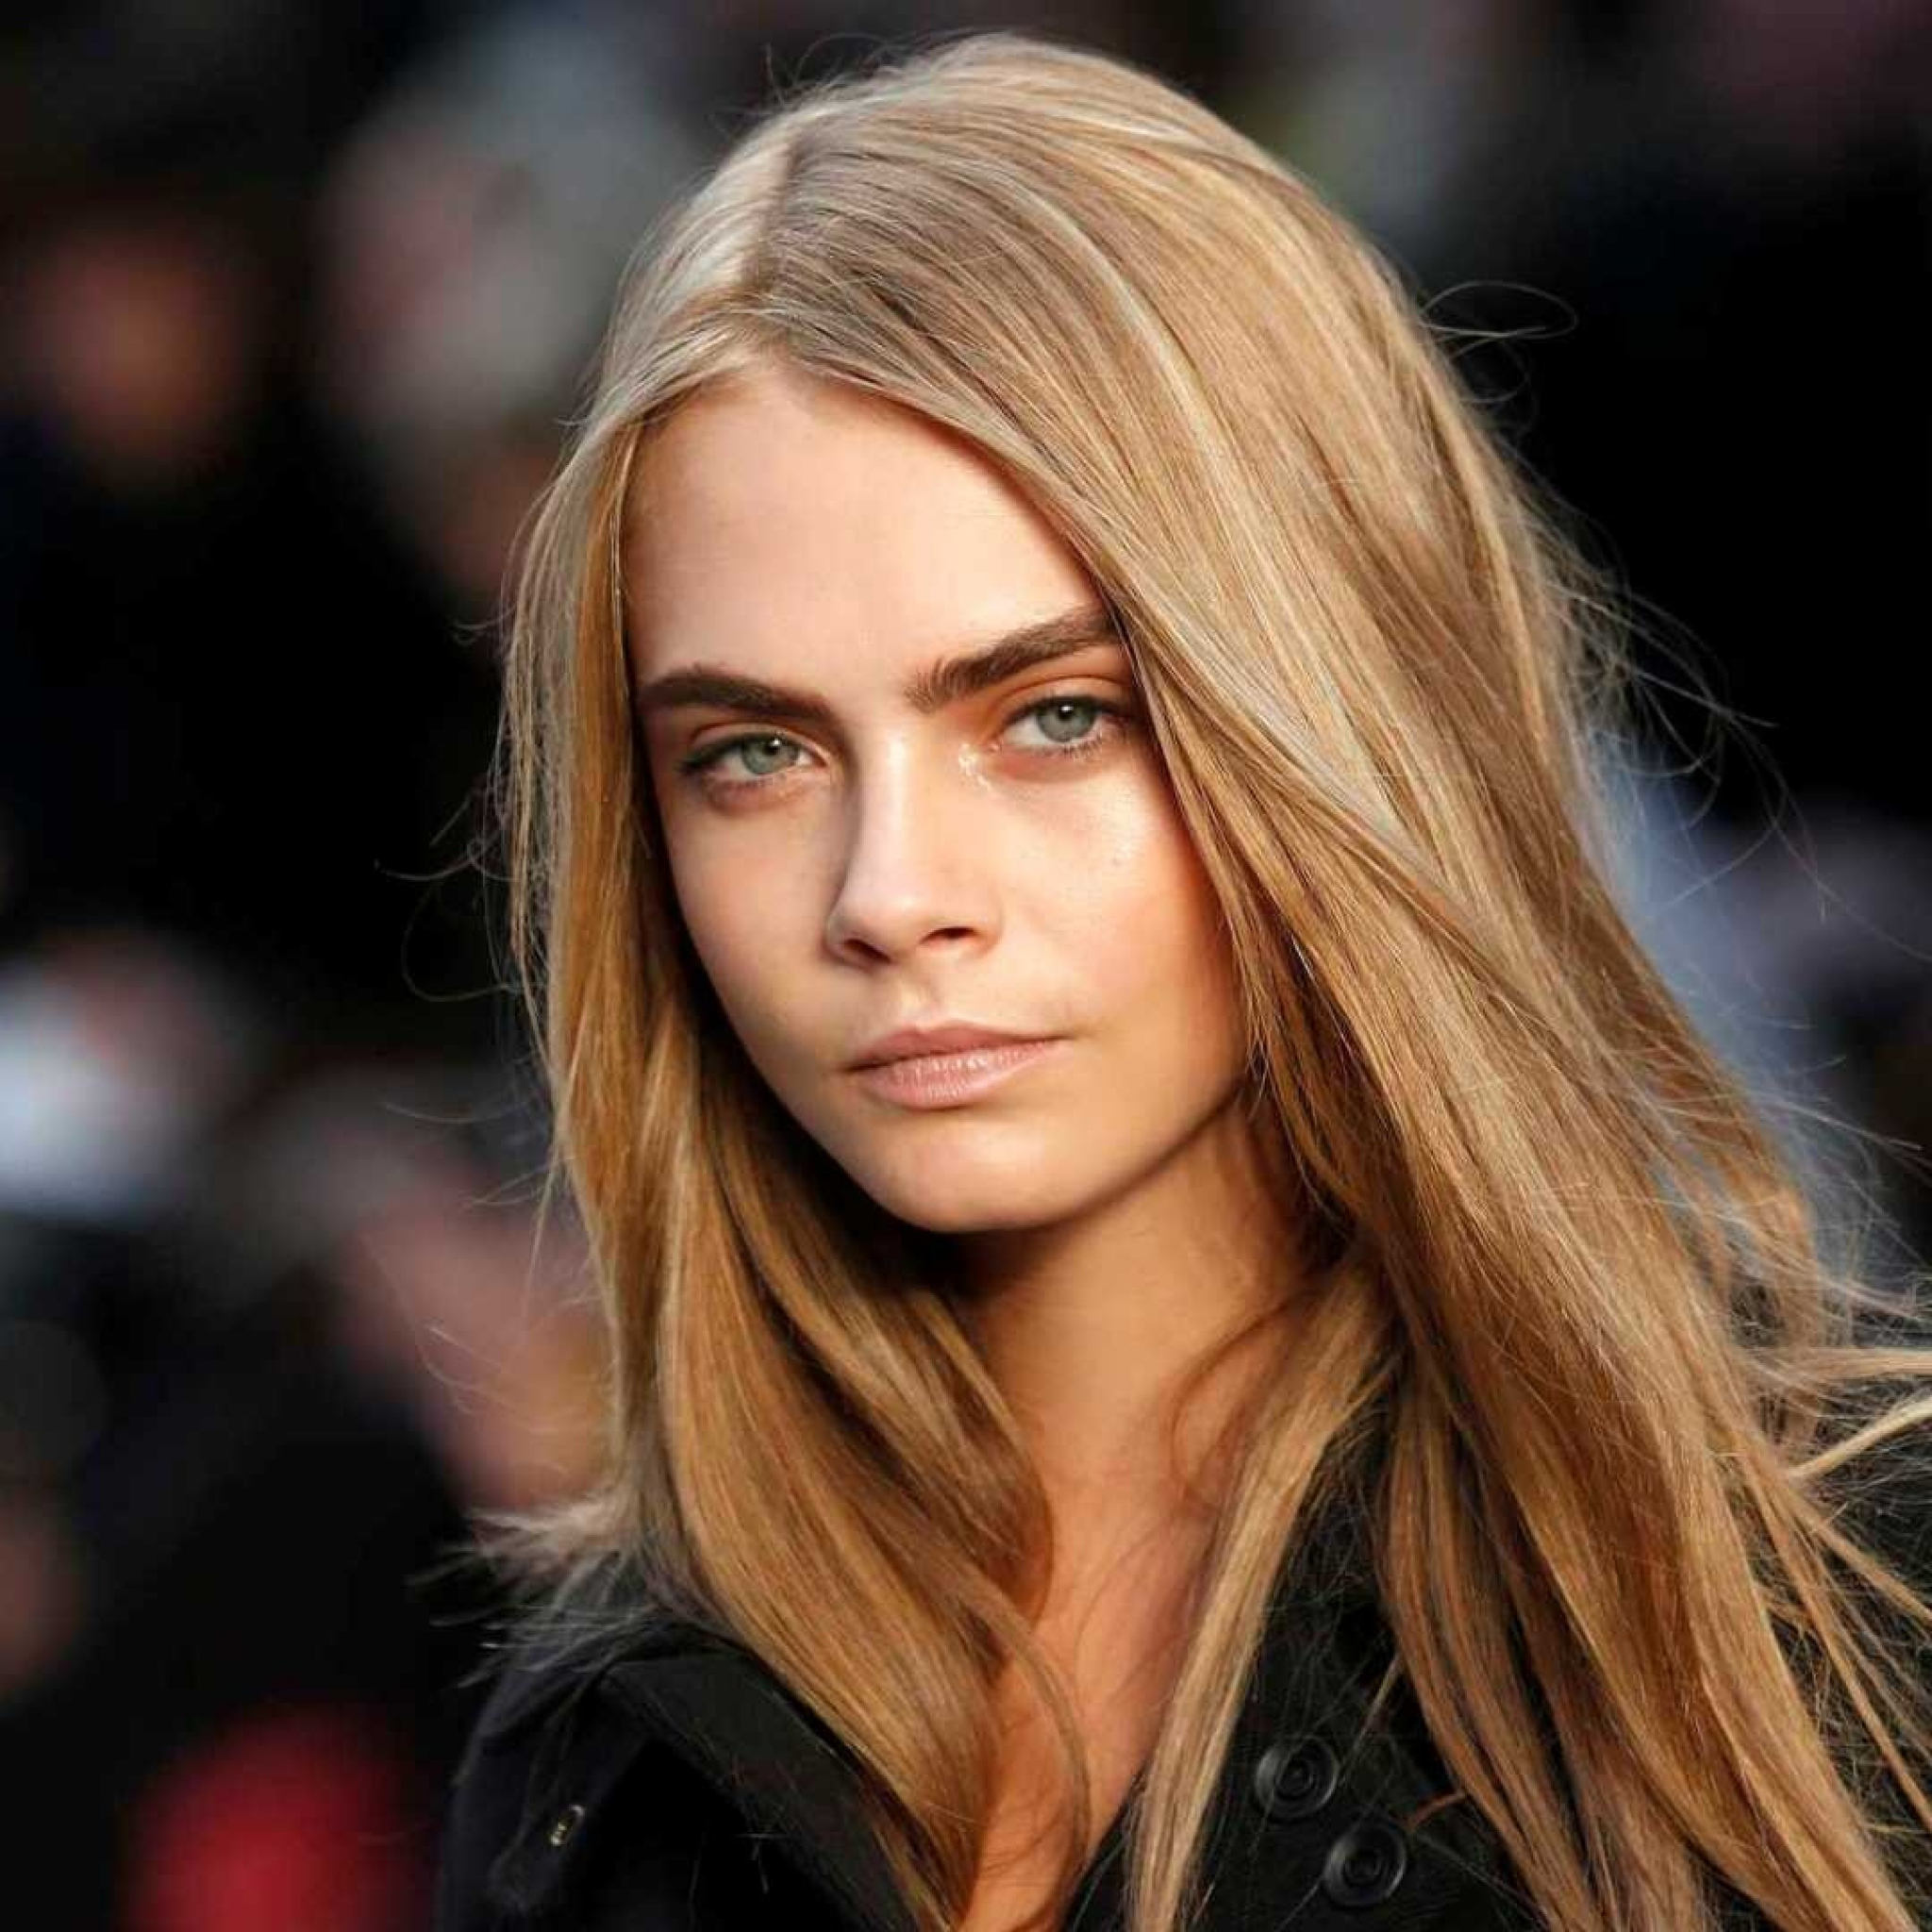 Cara Delevingne Lands Leading Role In Paper Towns Film